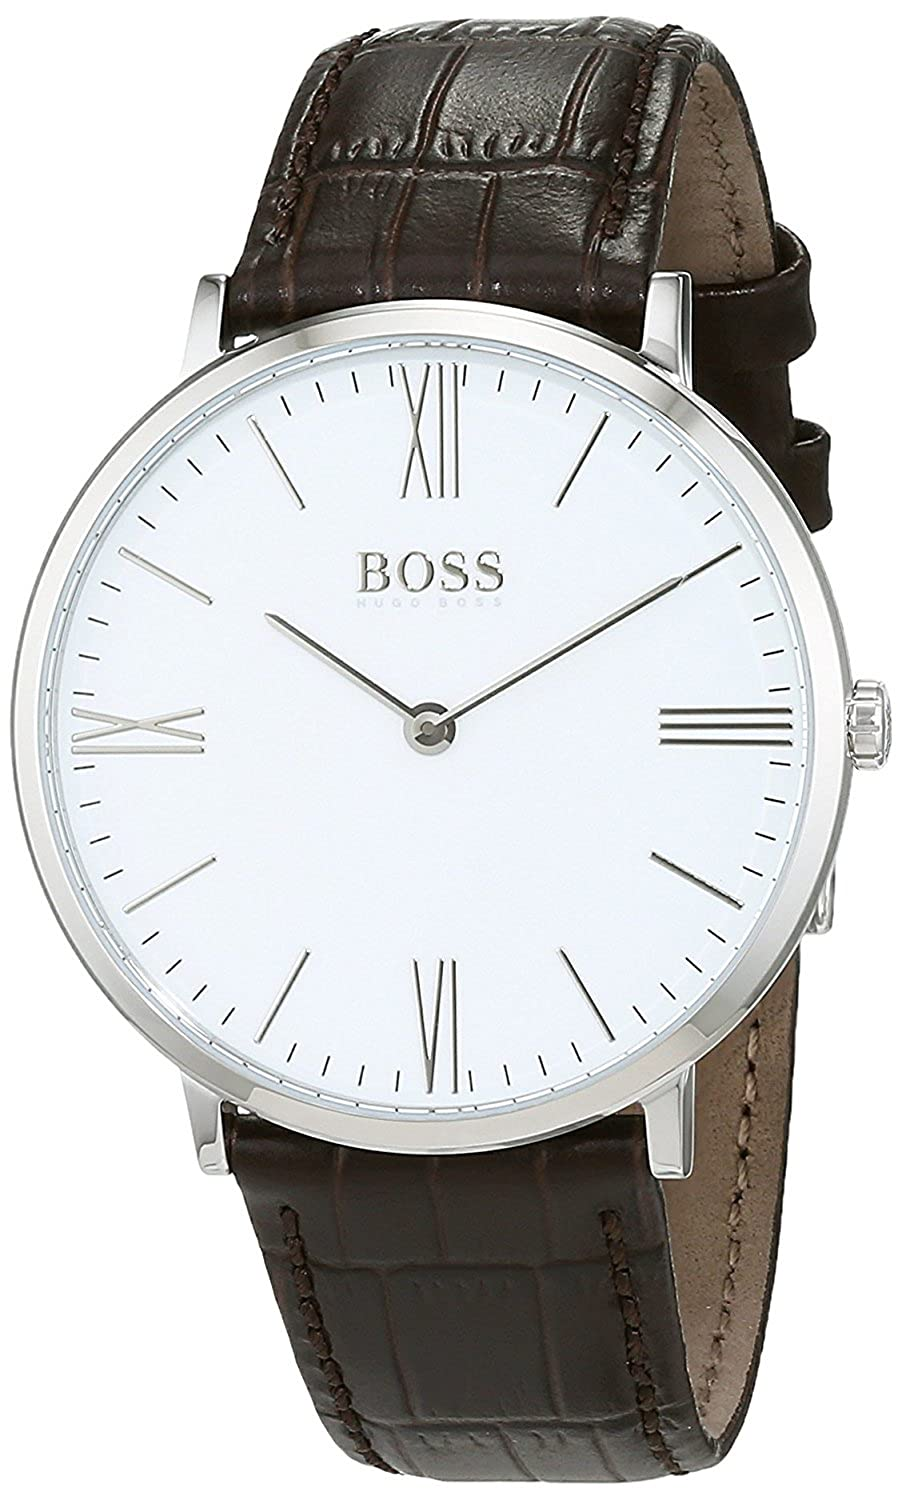 Amazon.com: Boss JACKSON 1513373 Mens Wristwatch Very elegant: Hugo Boss: Watches